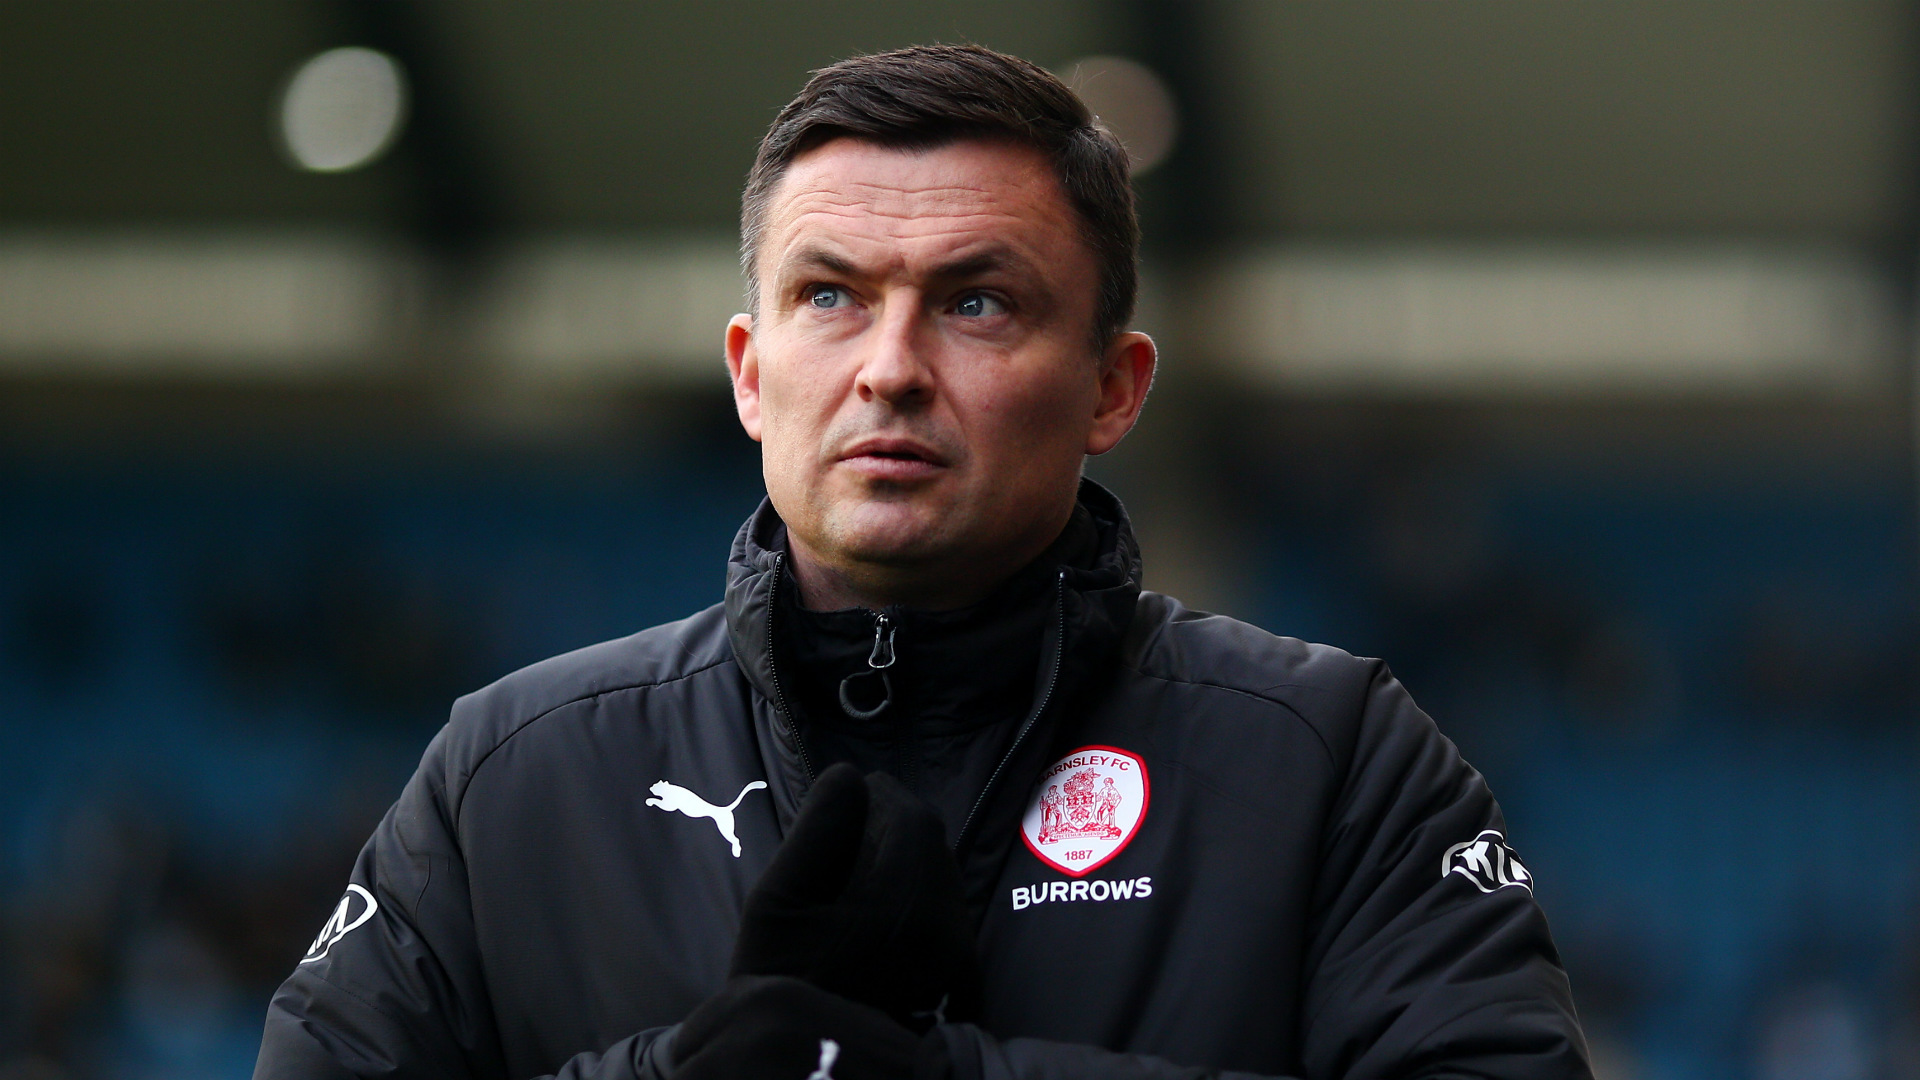 Leeds United confirm Paul Heckingbottom as new head coach